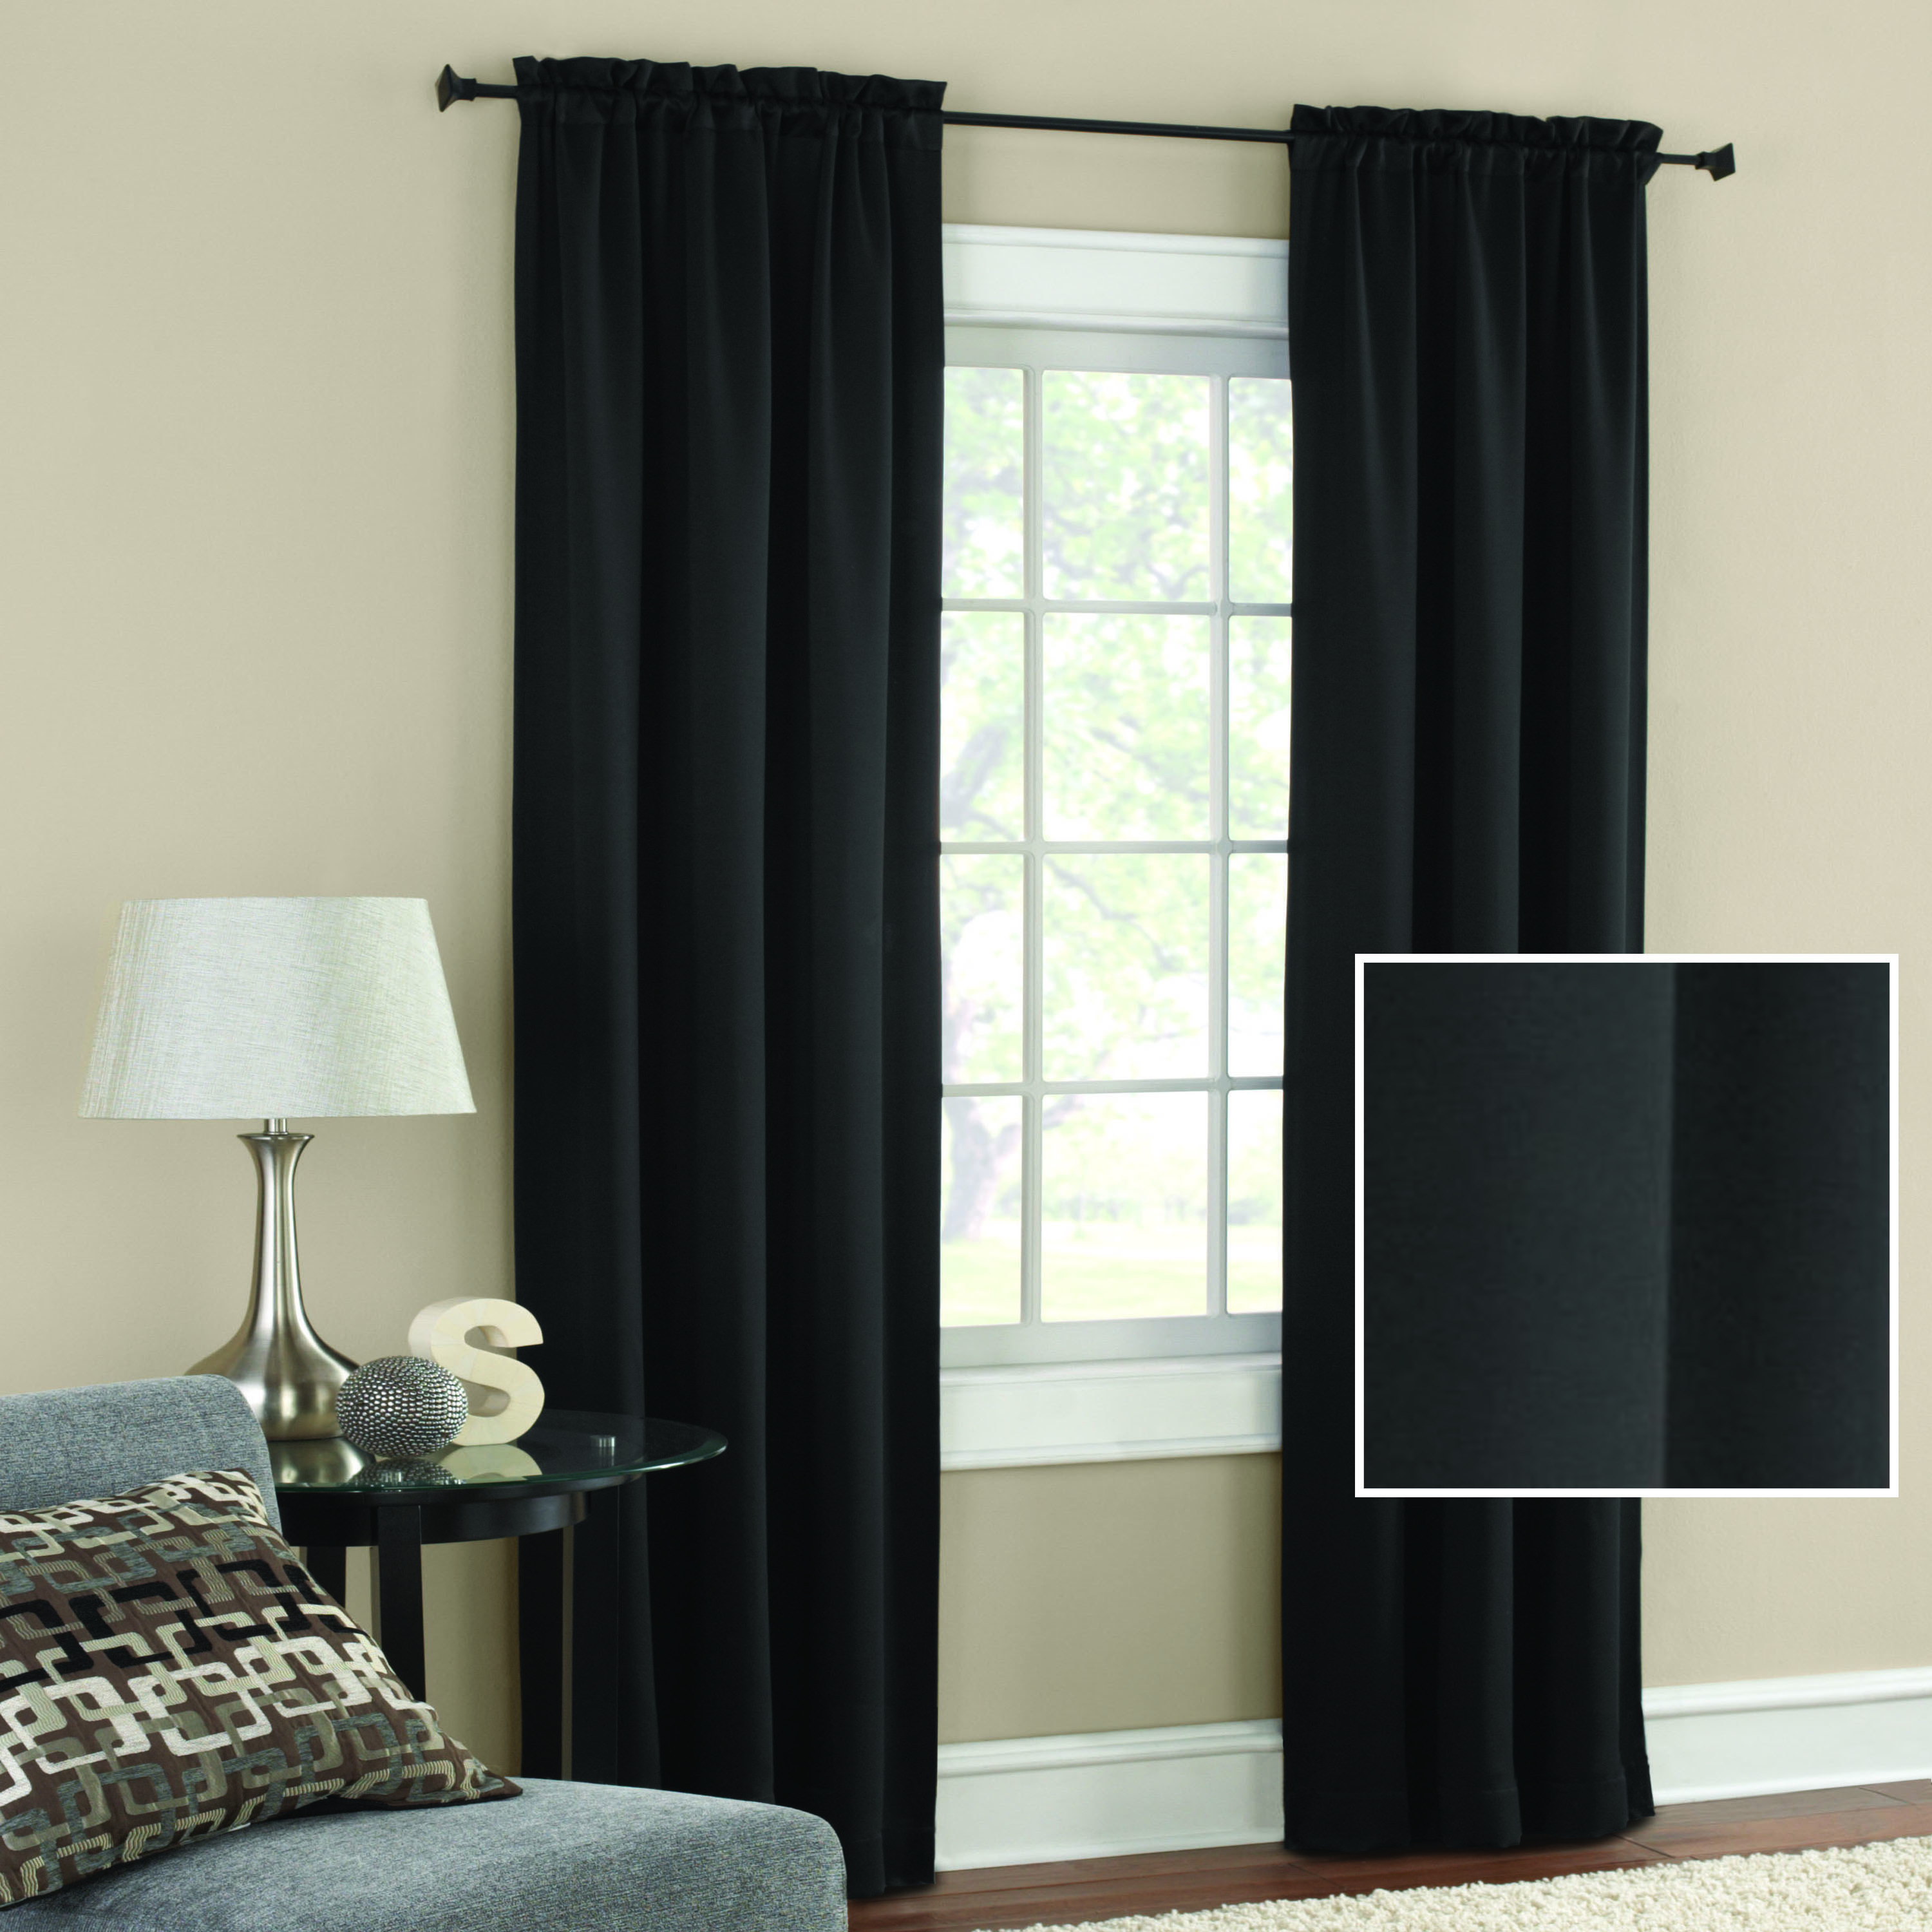 The black out curtains in black draped on a window